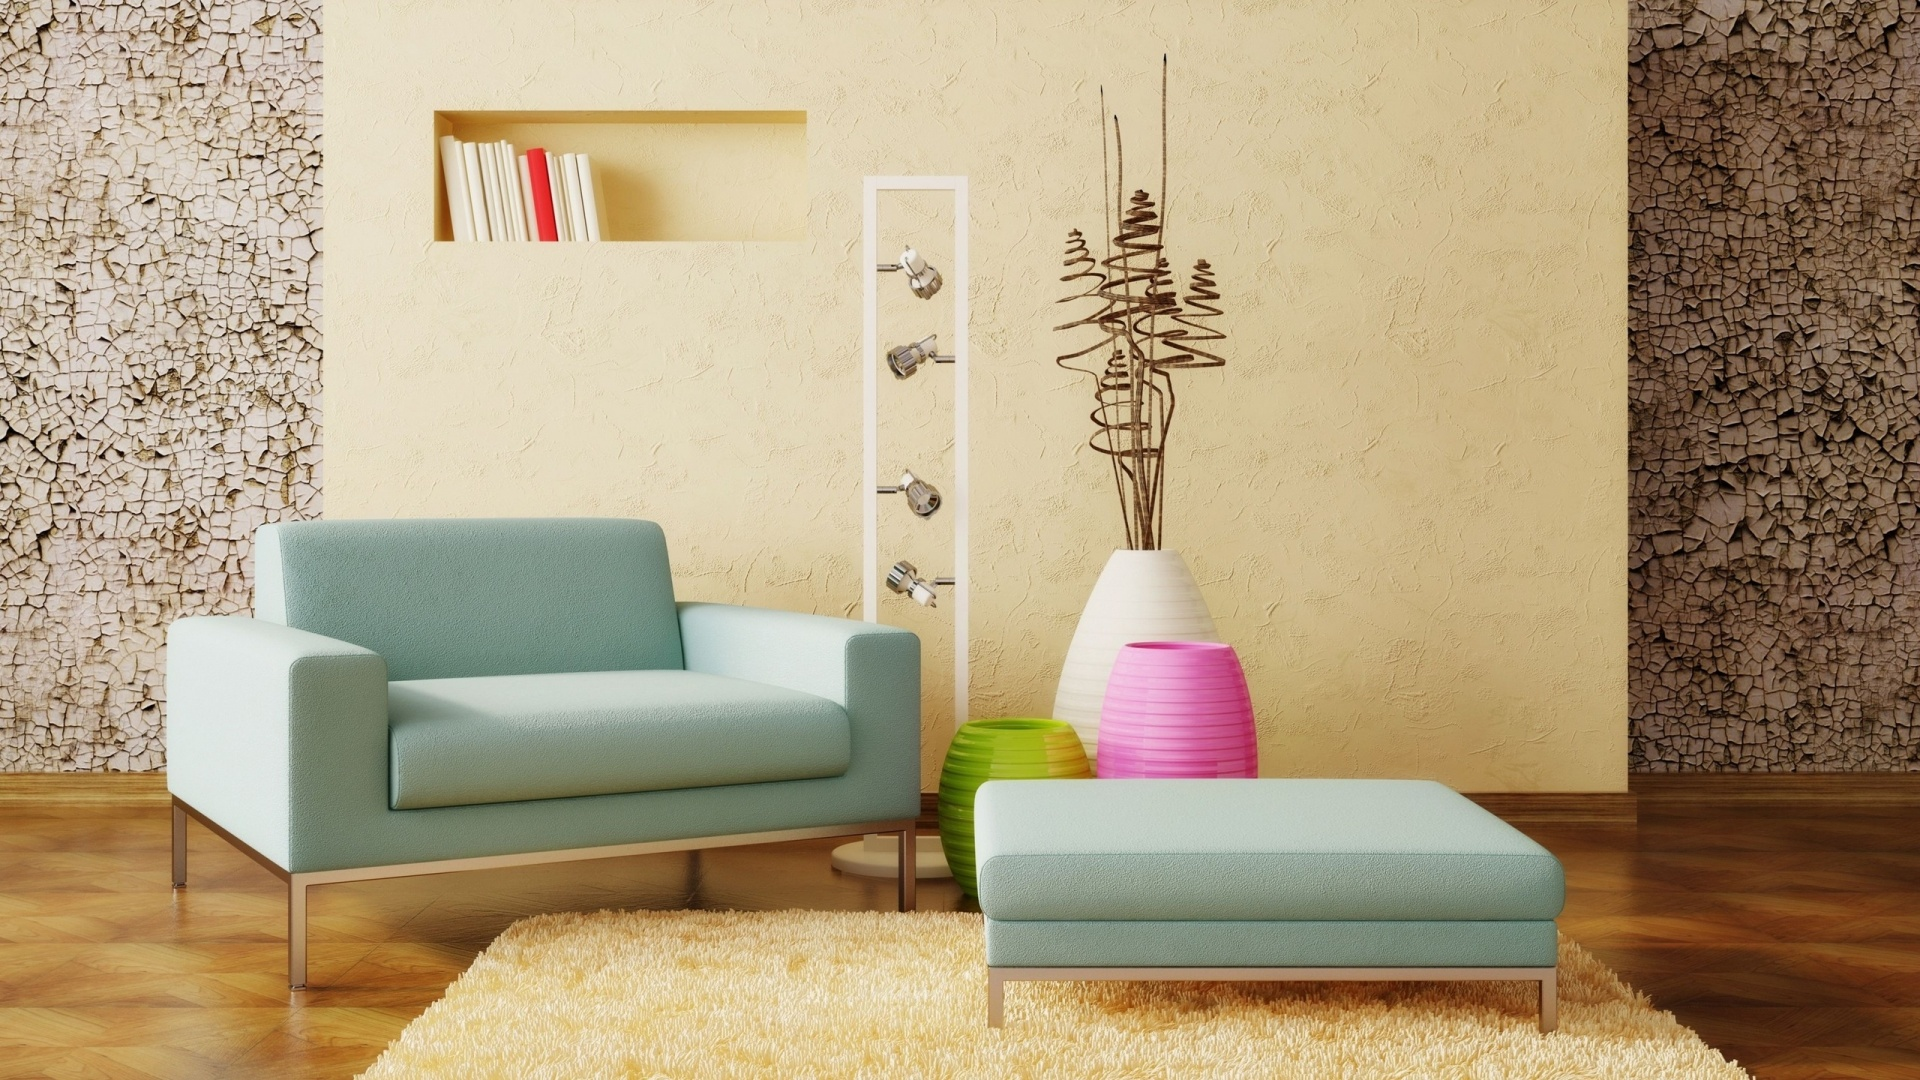 Home Decoration Wallpapers